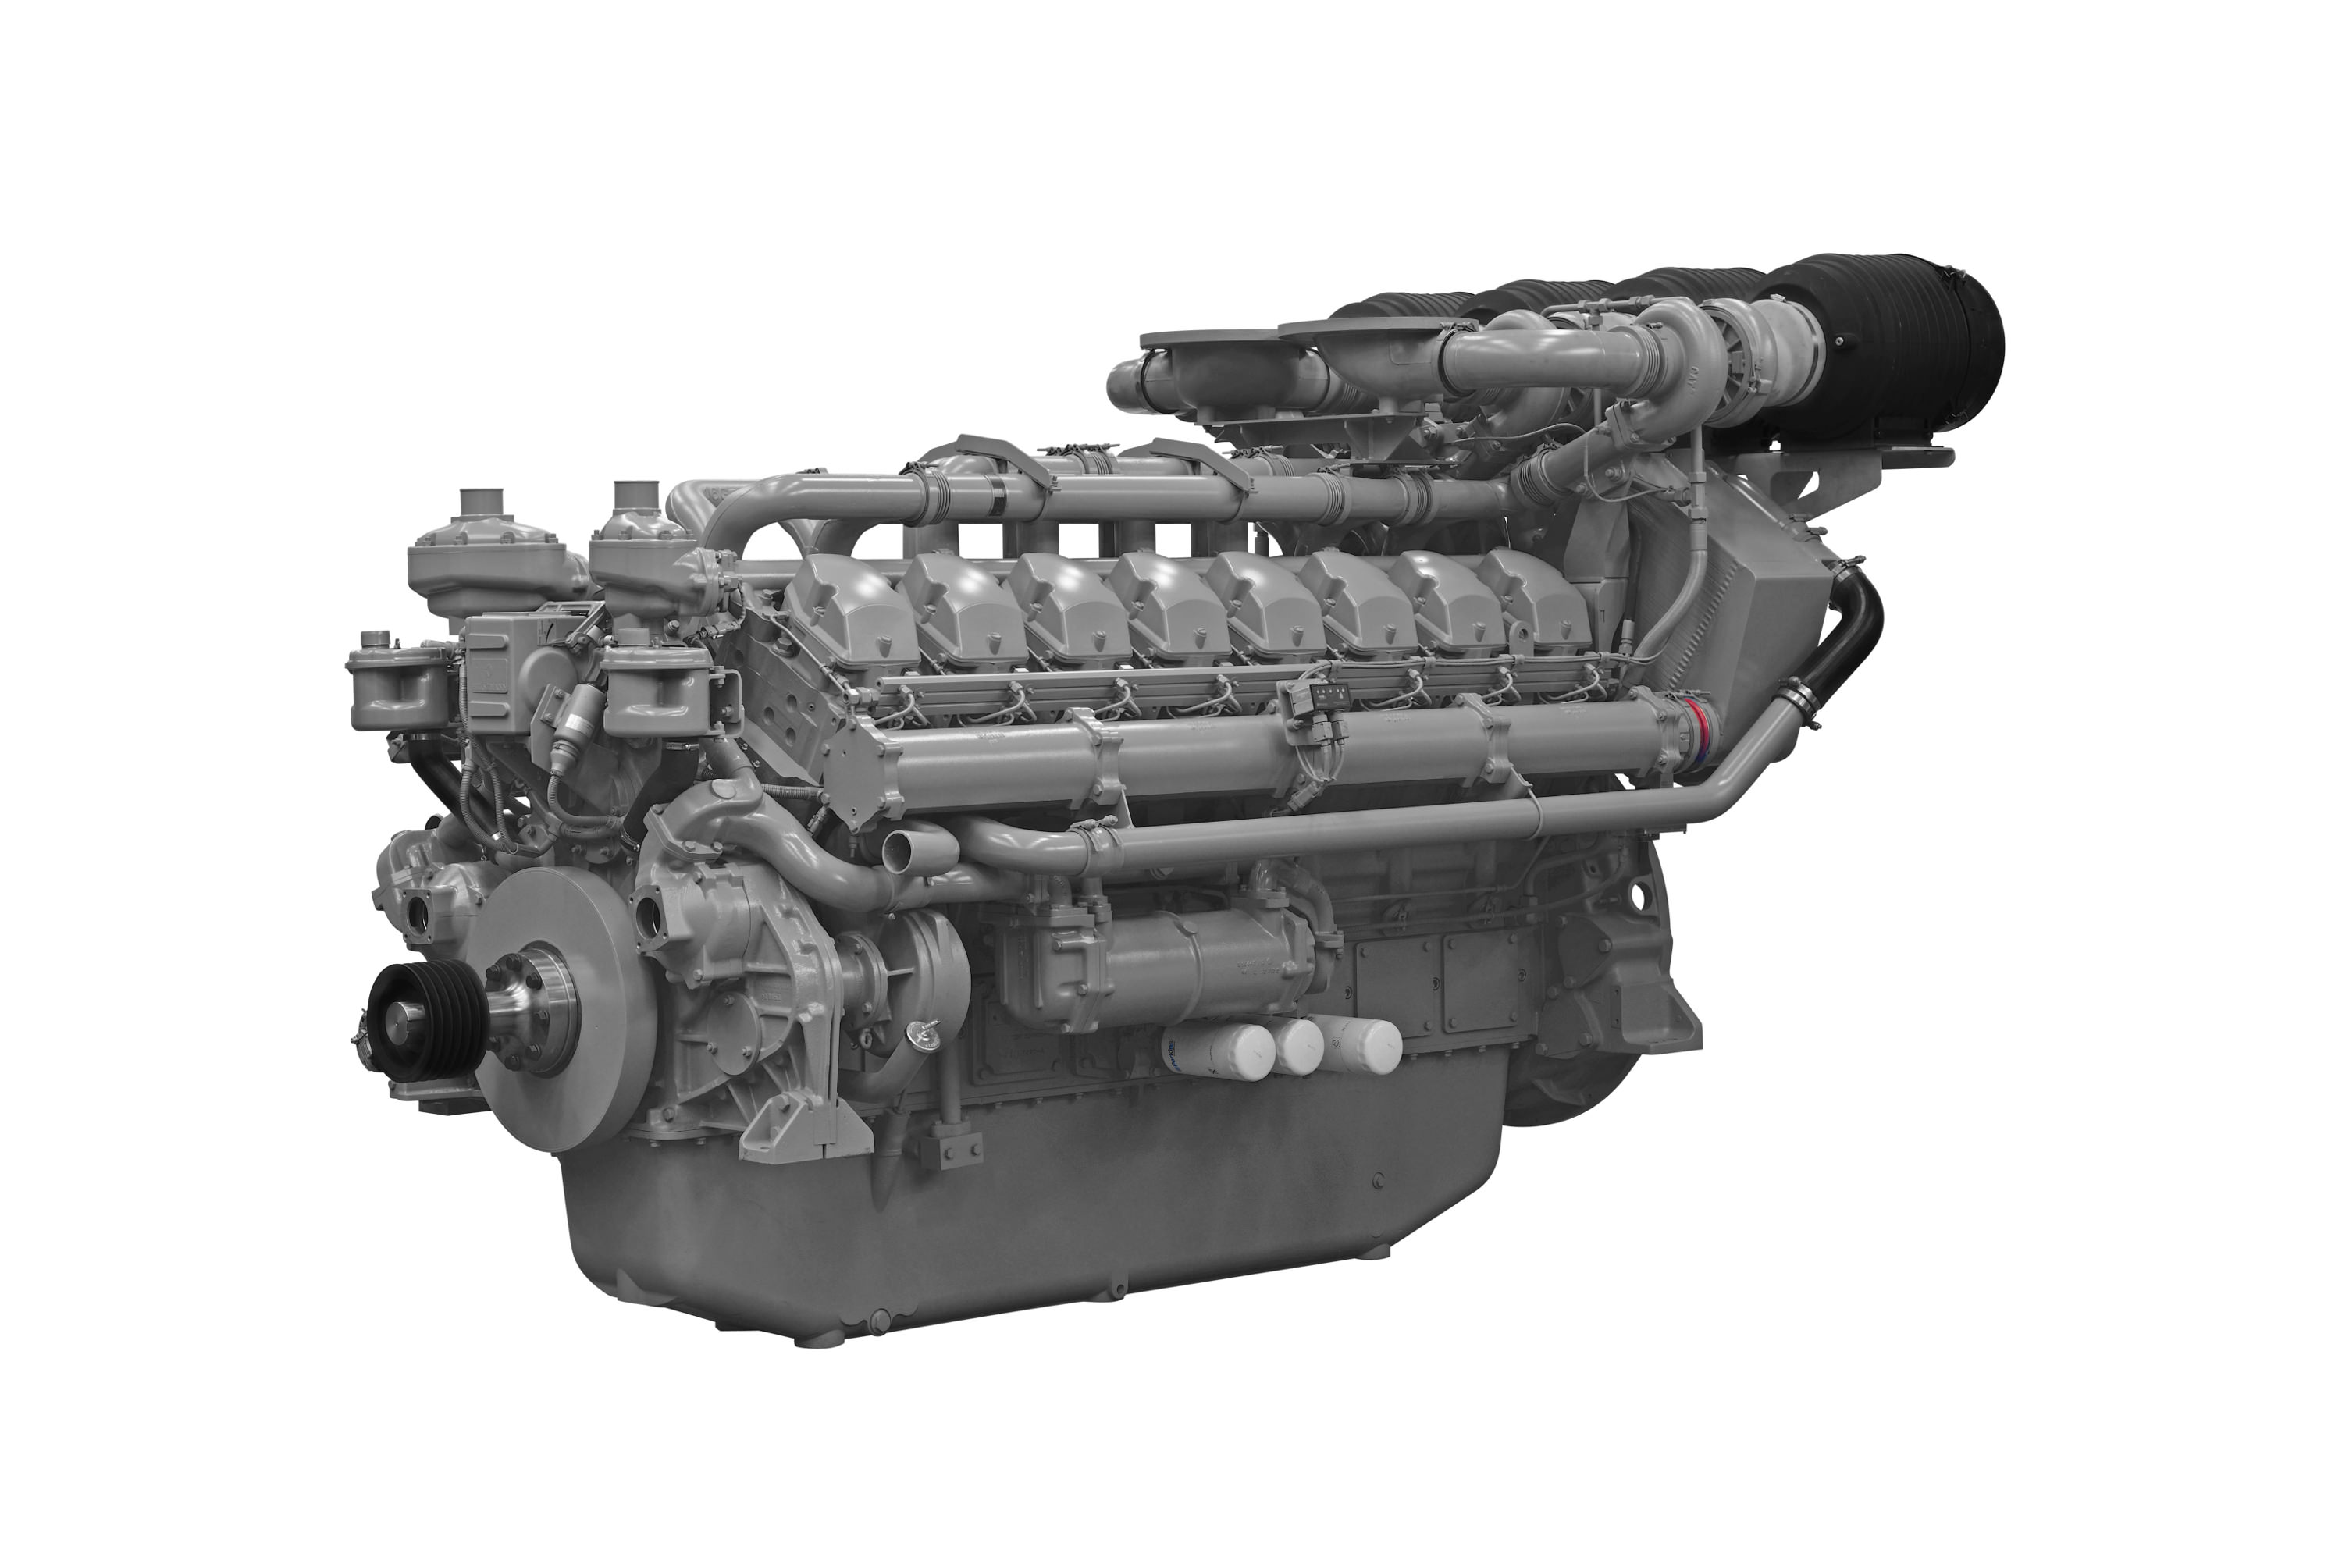 Perkins 4016 Diesel Engine